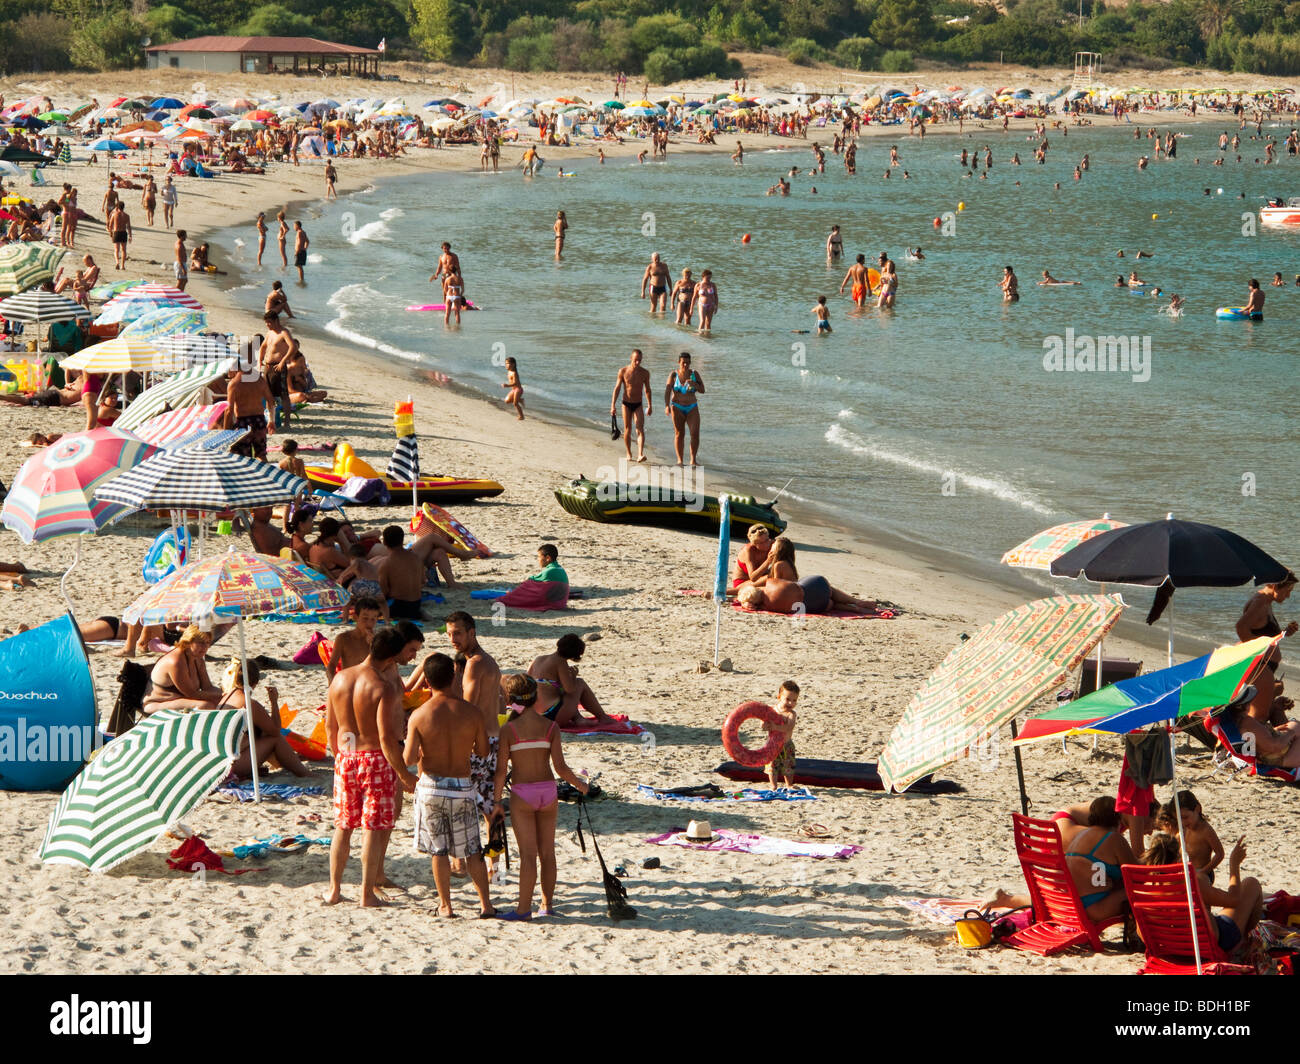 Holidaymakers on Tertenia Beach - Stock Image